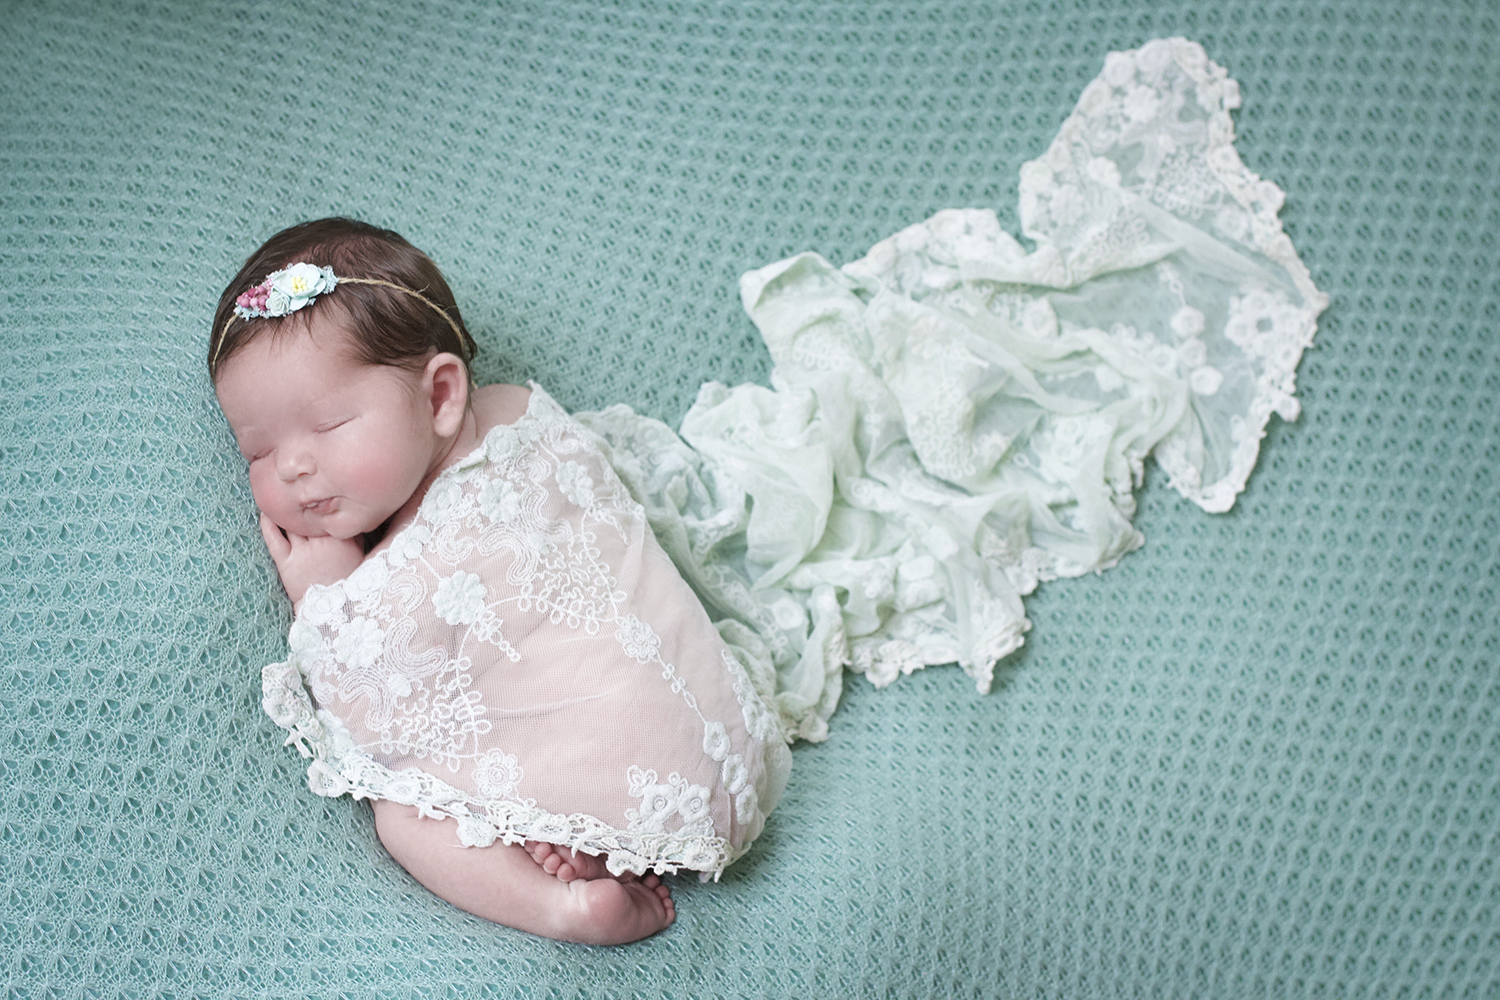 Newborn baby sleeping on teal blanket with teal flower tieback and teal lace wrap